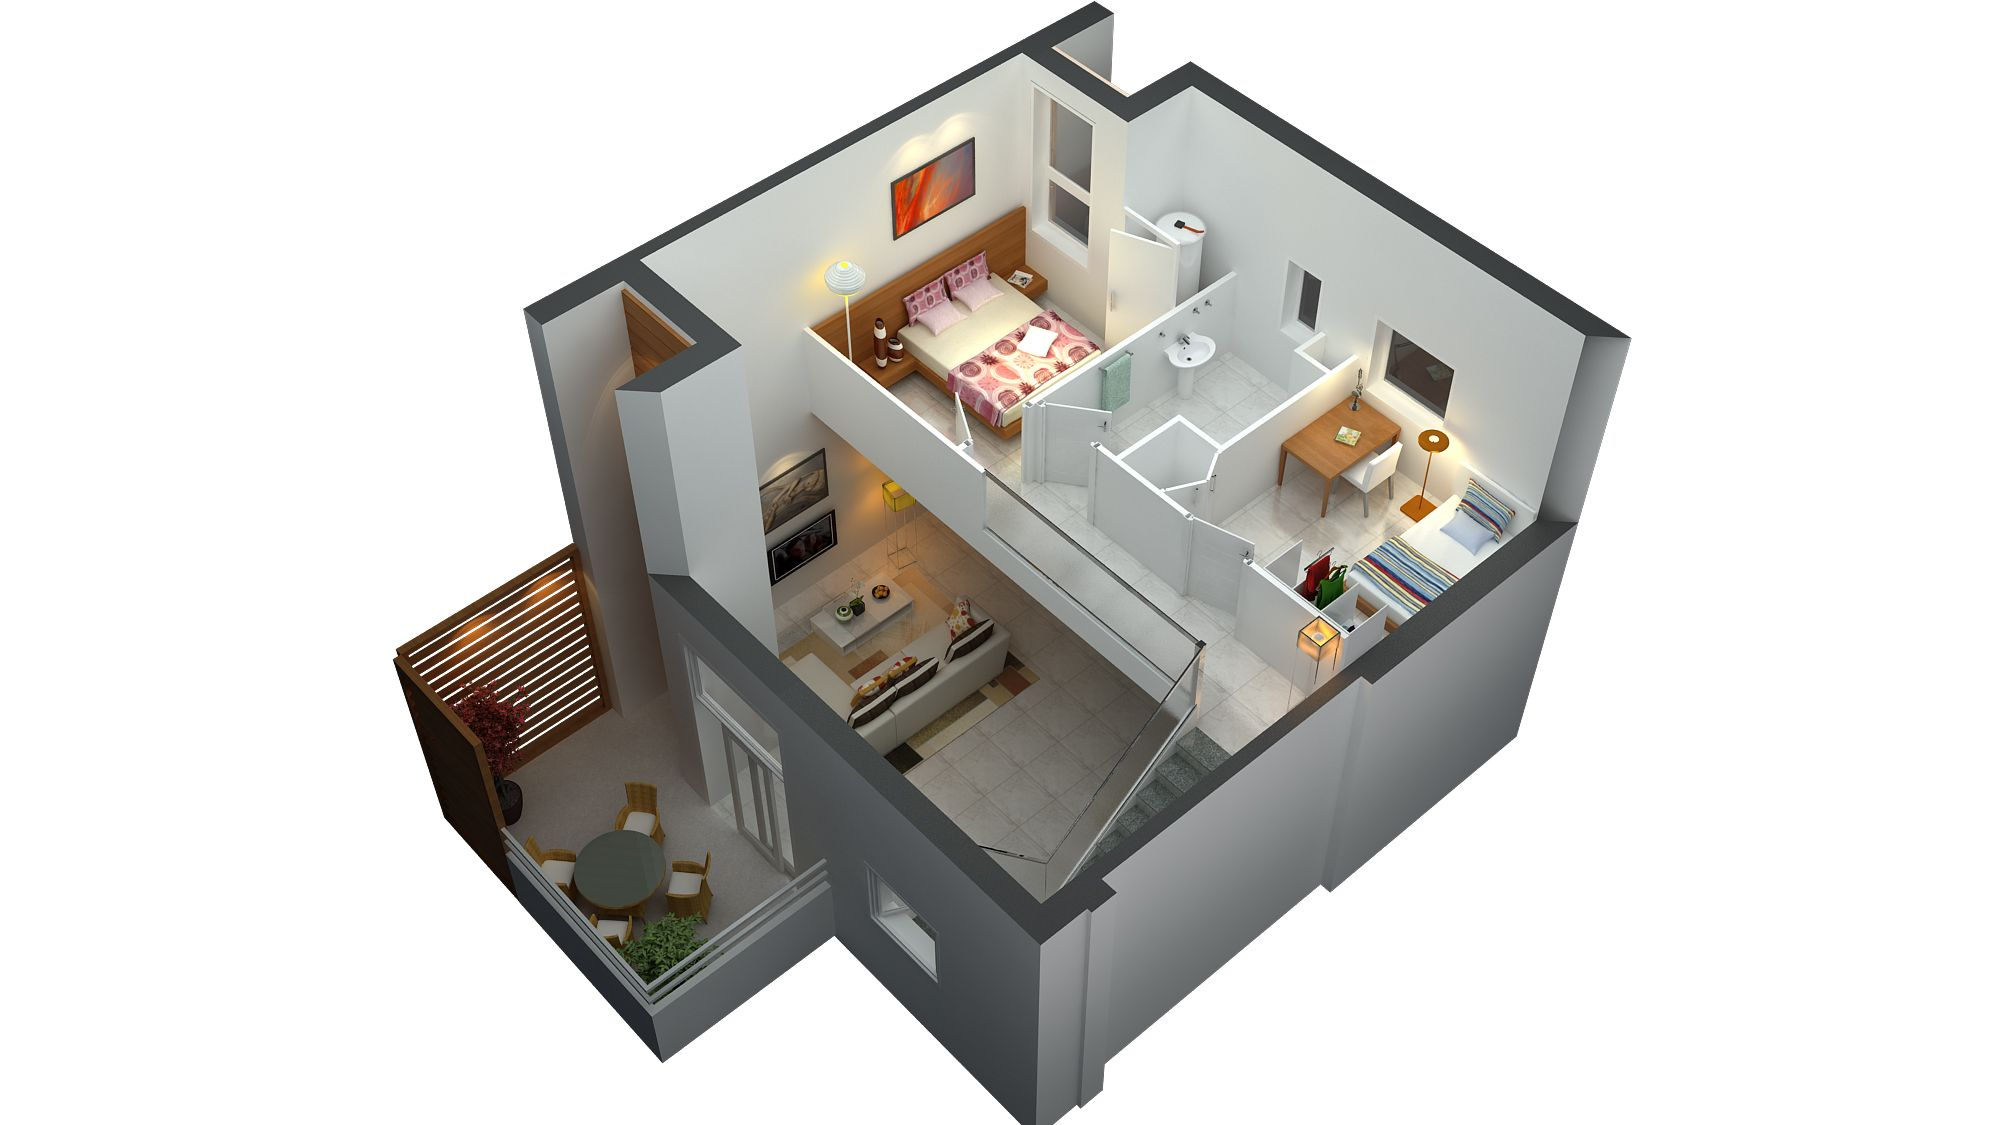 Visualizing And Demonstrating 3d Floor Plans Small House Design Bedroom House Plans House Floor Plans